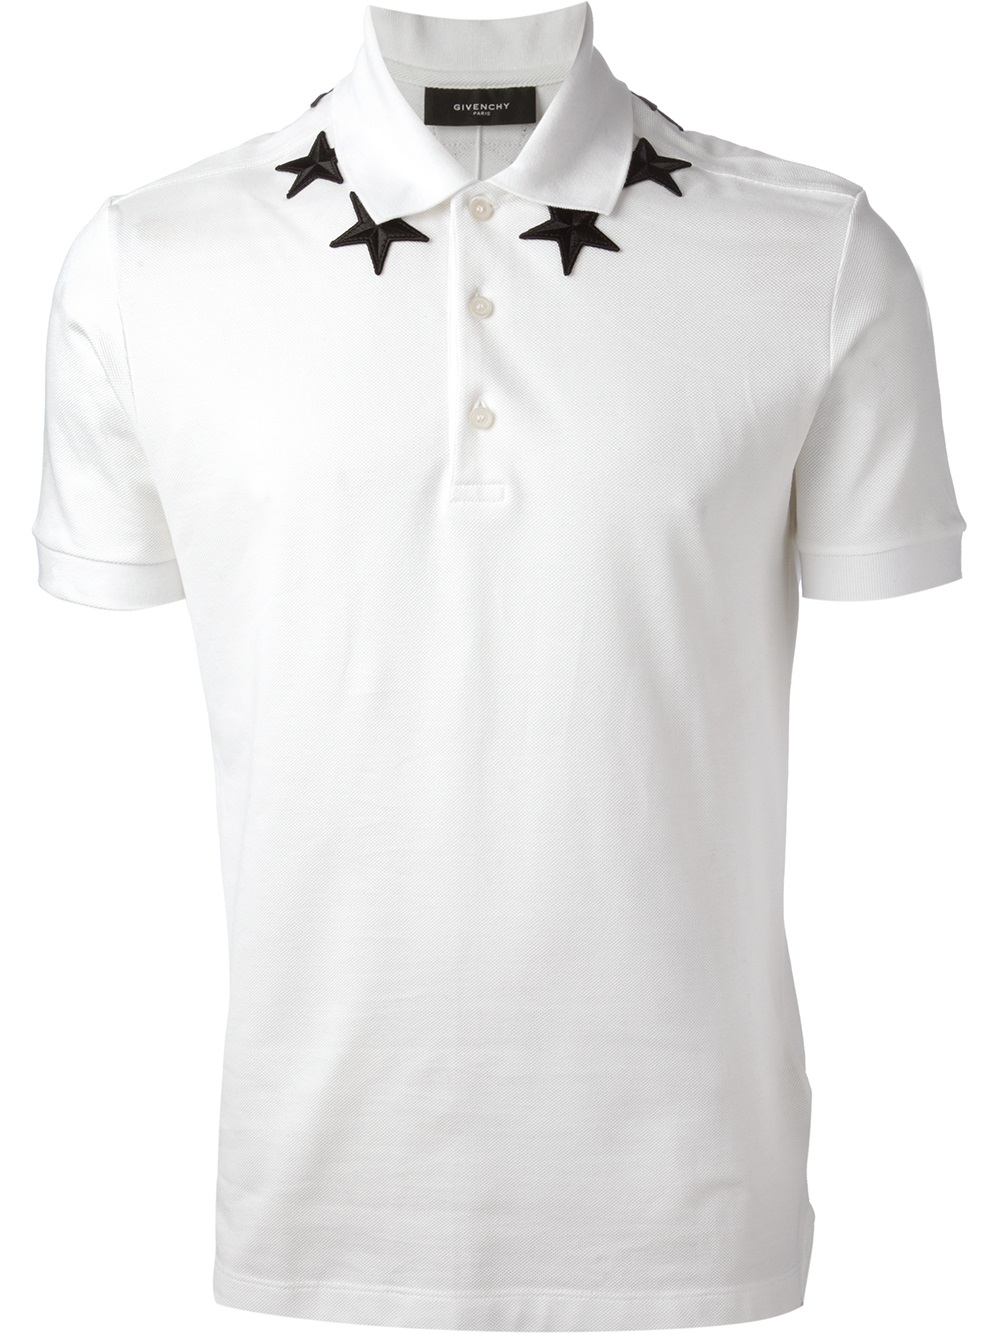 Givenchy Star Print Polo Shirt In White For Men Lyst